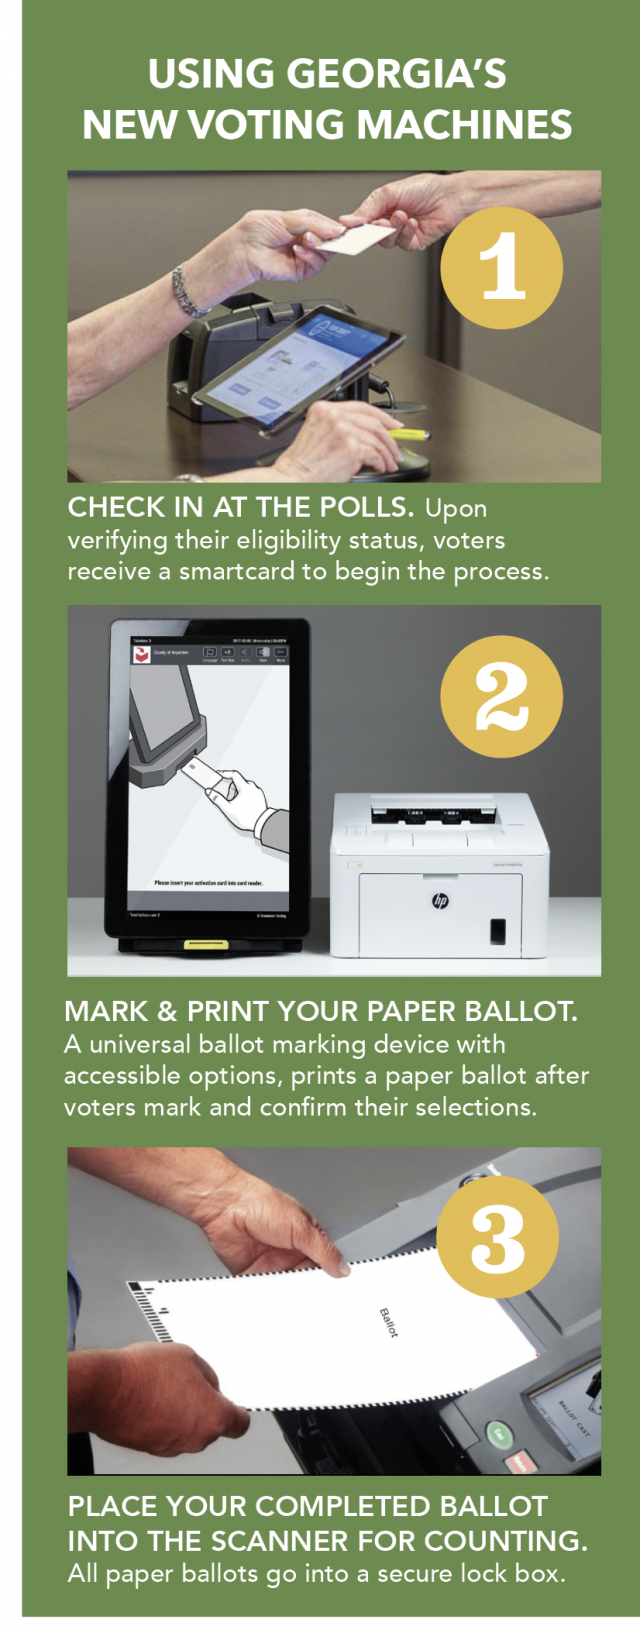 Using Georgia's New Voting Machines: 1) Check in at the polls. Upon verifying their eligibility status, voters receive a smartcard to begin the process. 2) Mark and print your paper ballot. A universal ballot marking device with accessible options, prints a paper ballot after voters mark and confirm their selections. 3) Place your completed ballot into scanner for counting. All paper ballots go into a secure lock box.